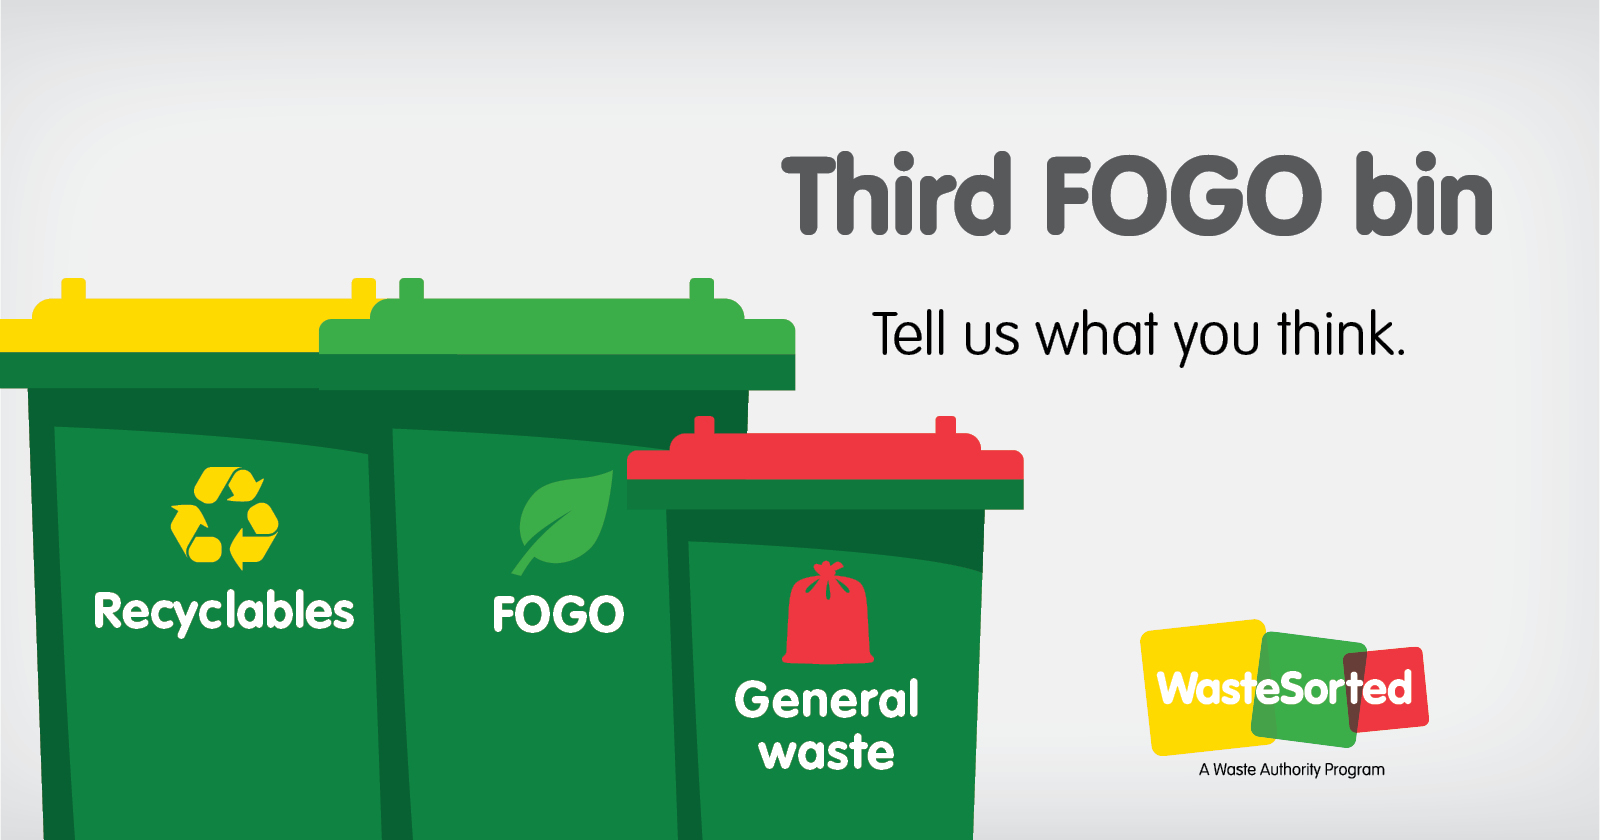 Share your thoughts on FOGO